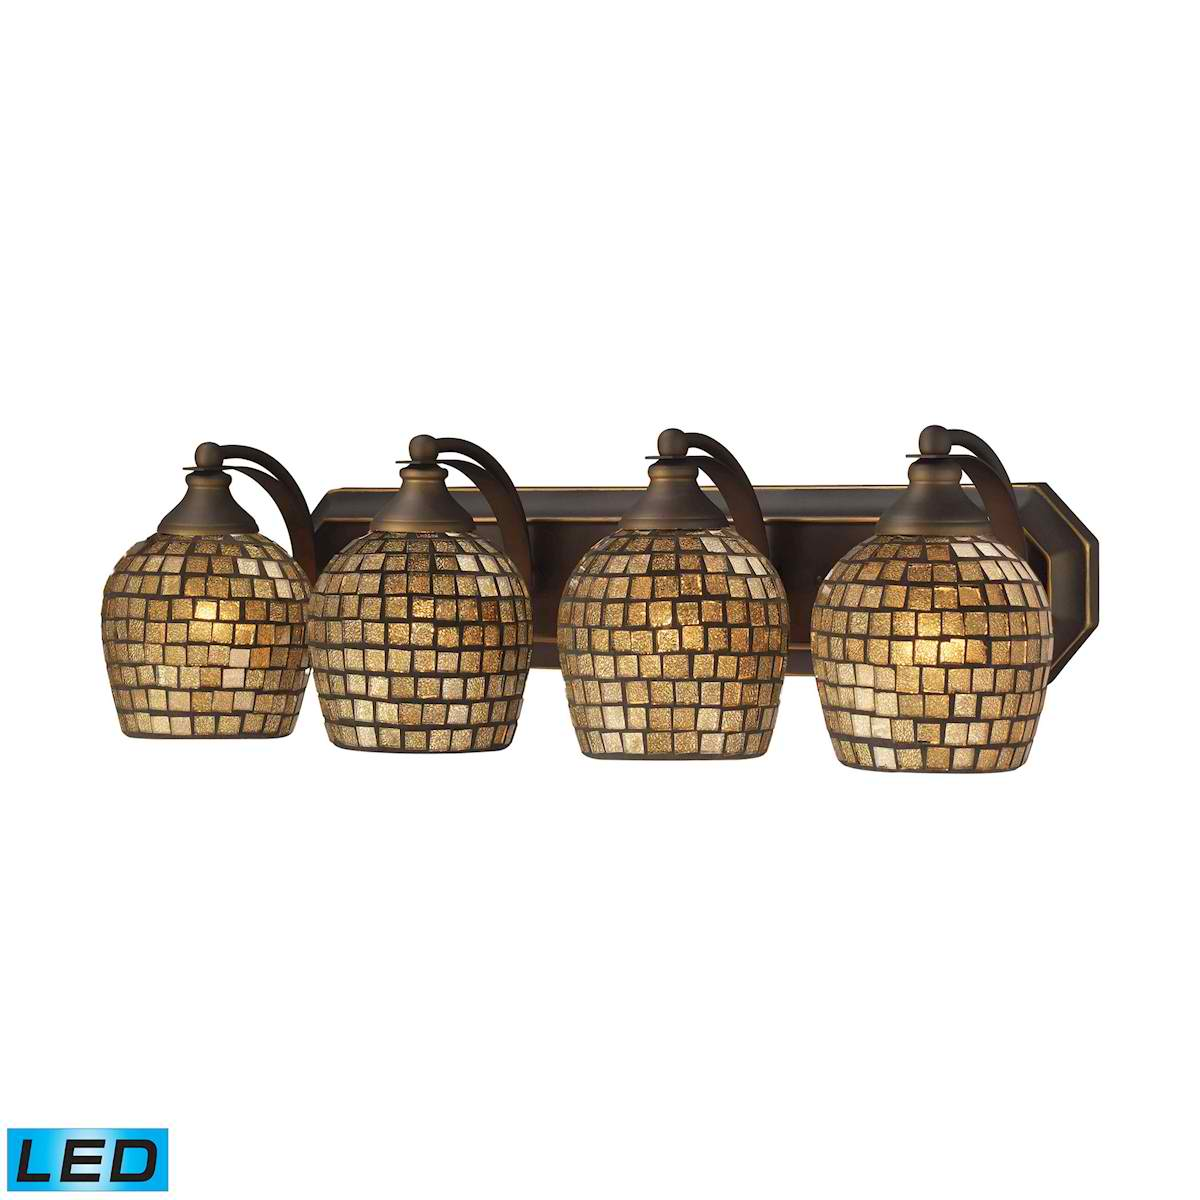 4 Light Vanity in Aged Bronze and Gold Mosaic Glass - LED, 800 Lumens (3200 Lumens Total) with Full Scale